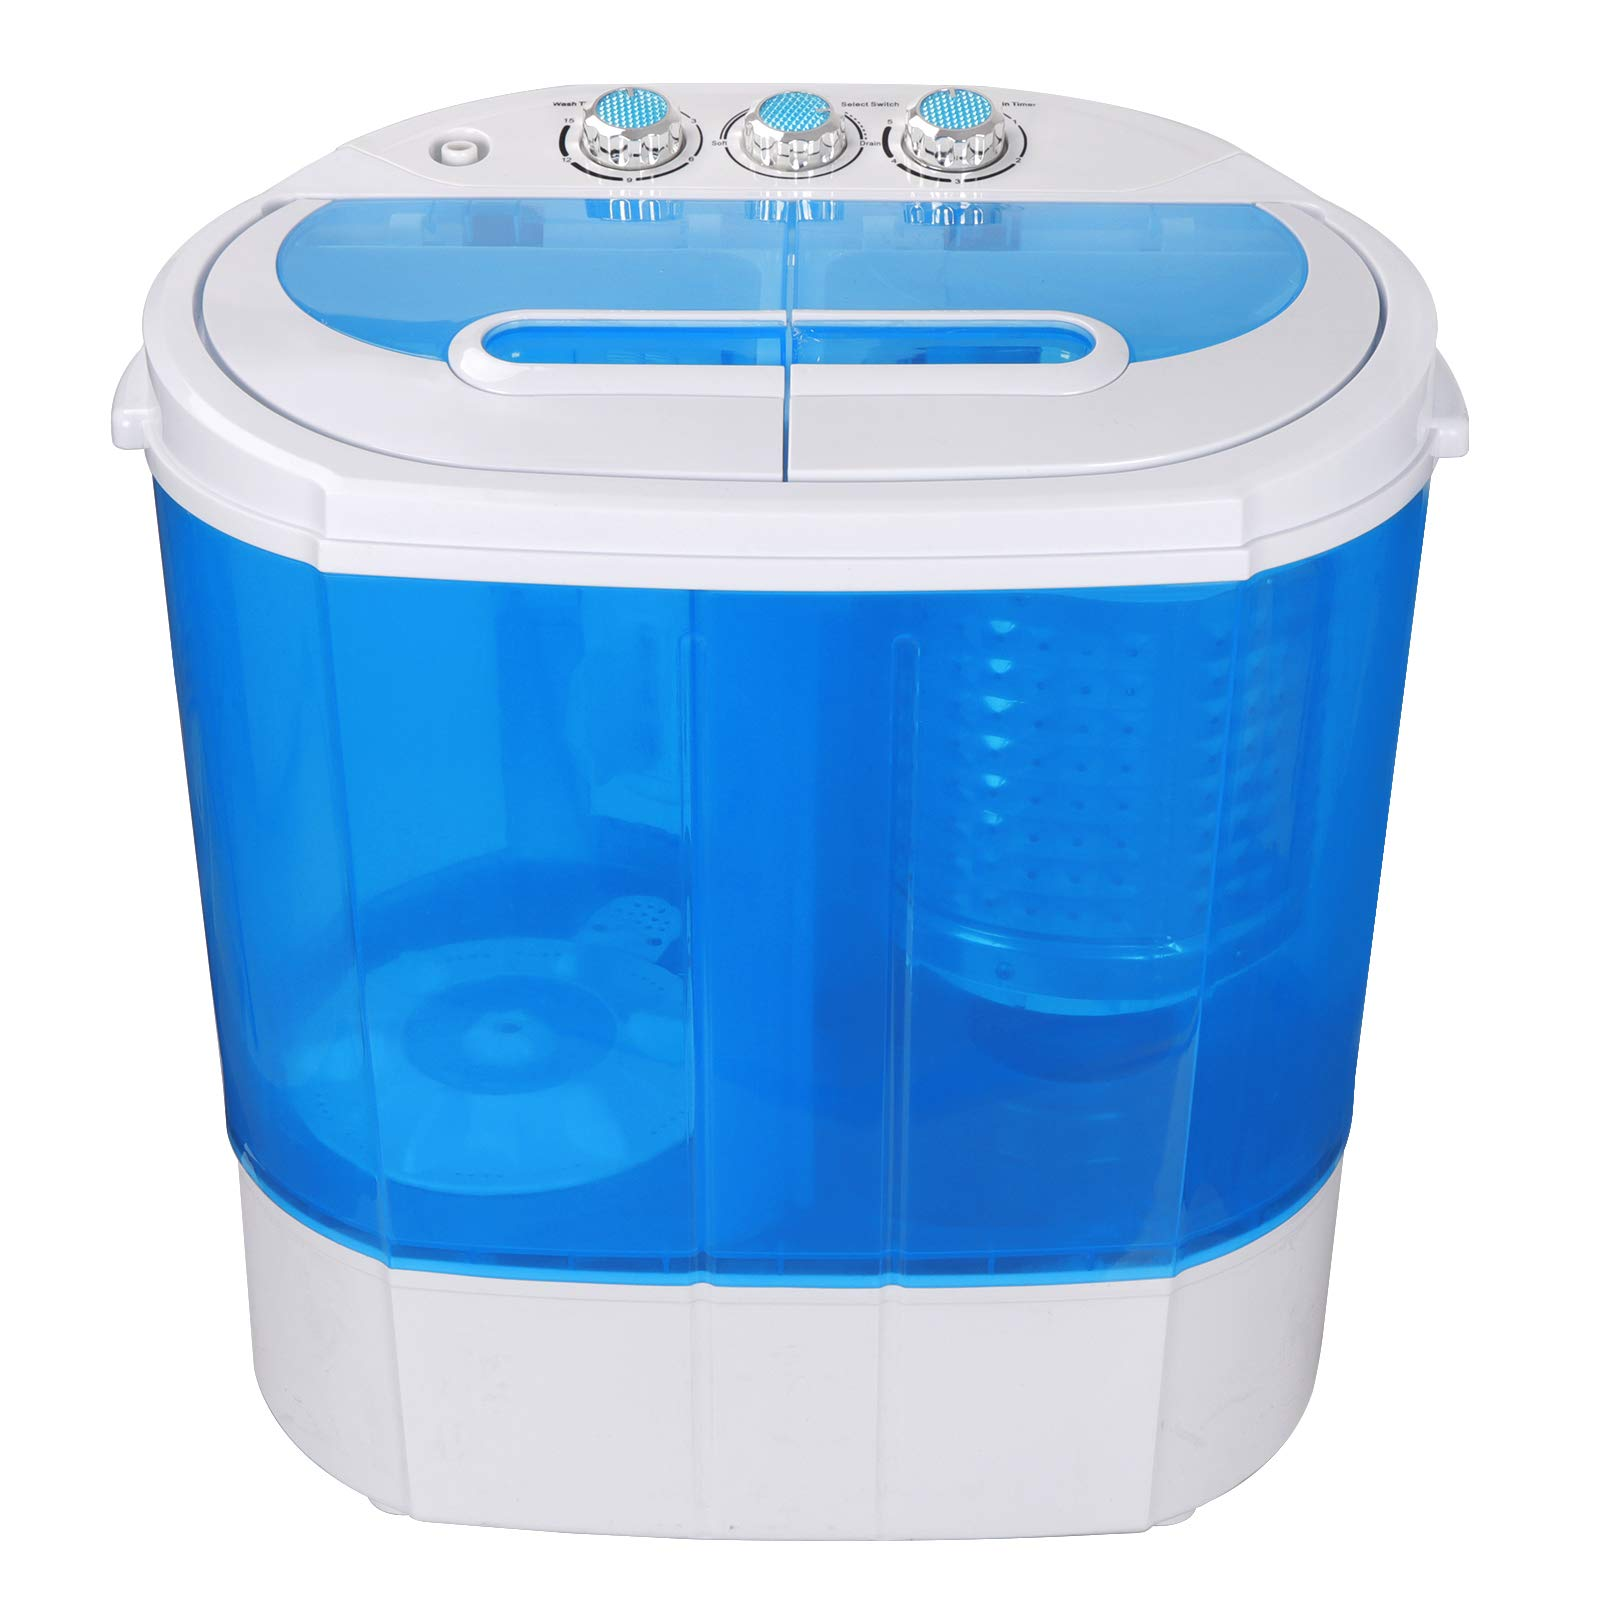 SUPER DEAL Portable Washing Machine 17.6lbs Twin Tub Wash and Spin Cycle w//Gravity Drain and Hose